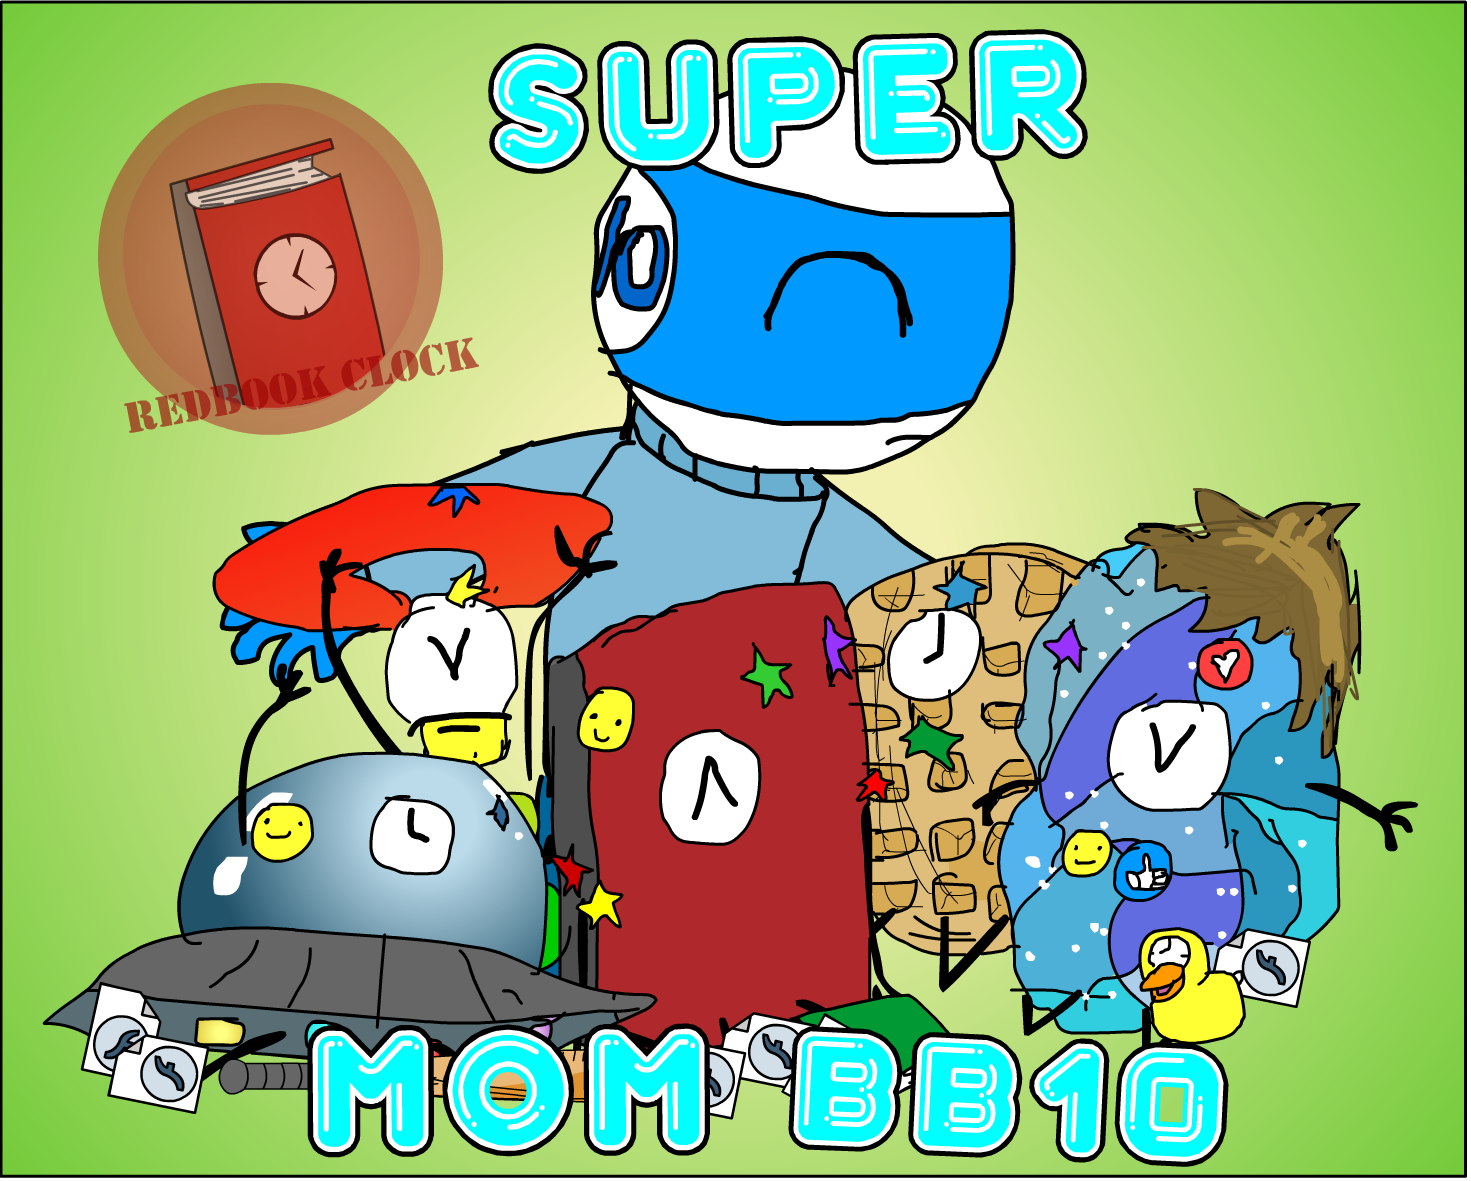 Super Mom BB10